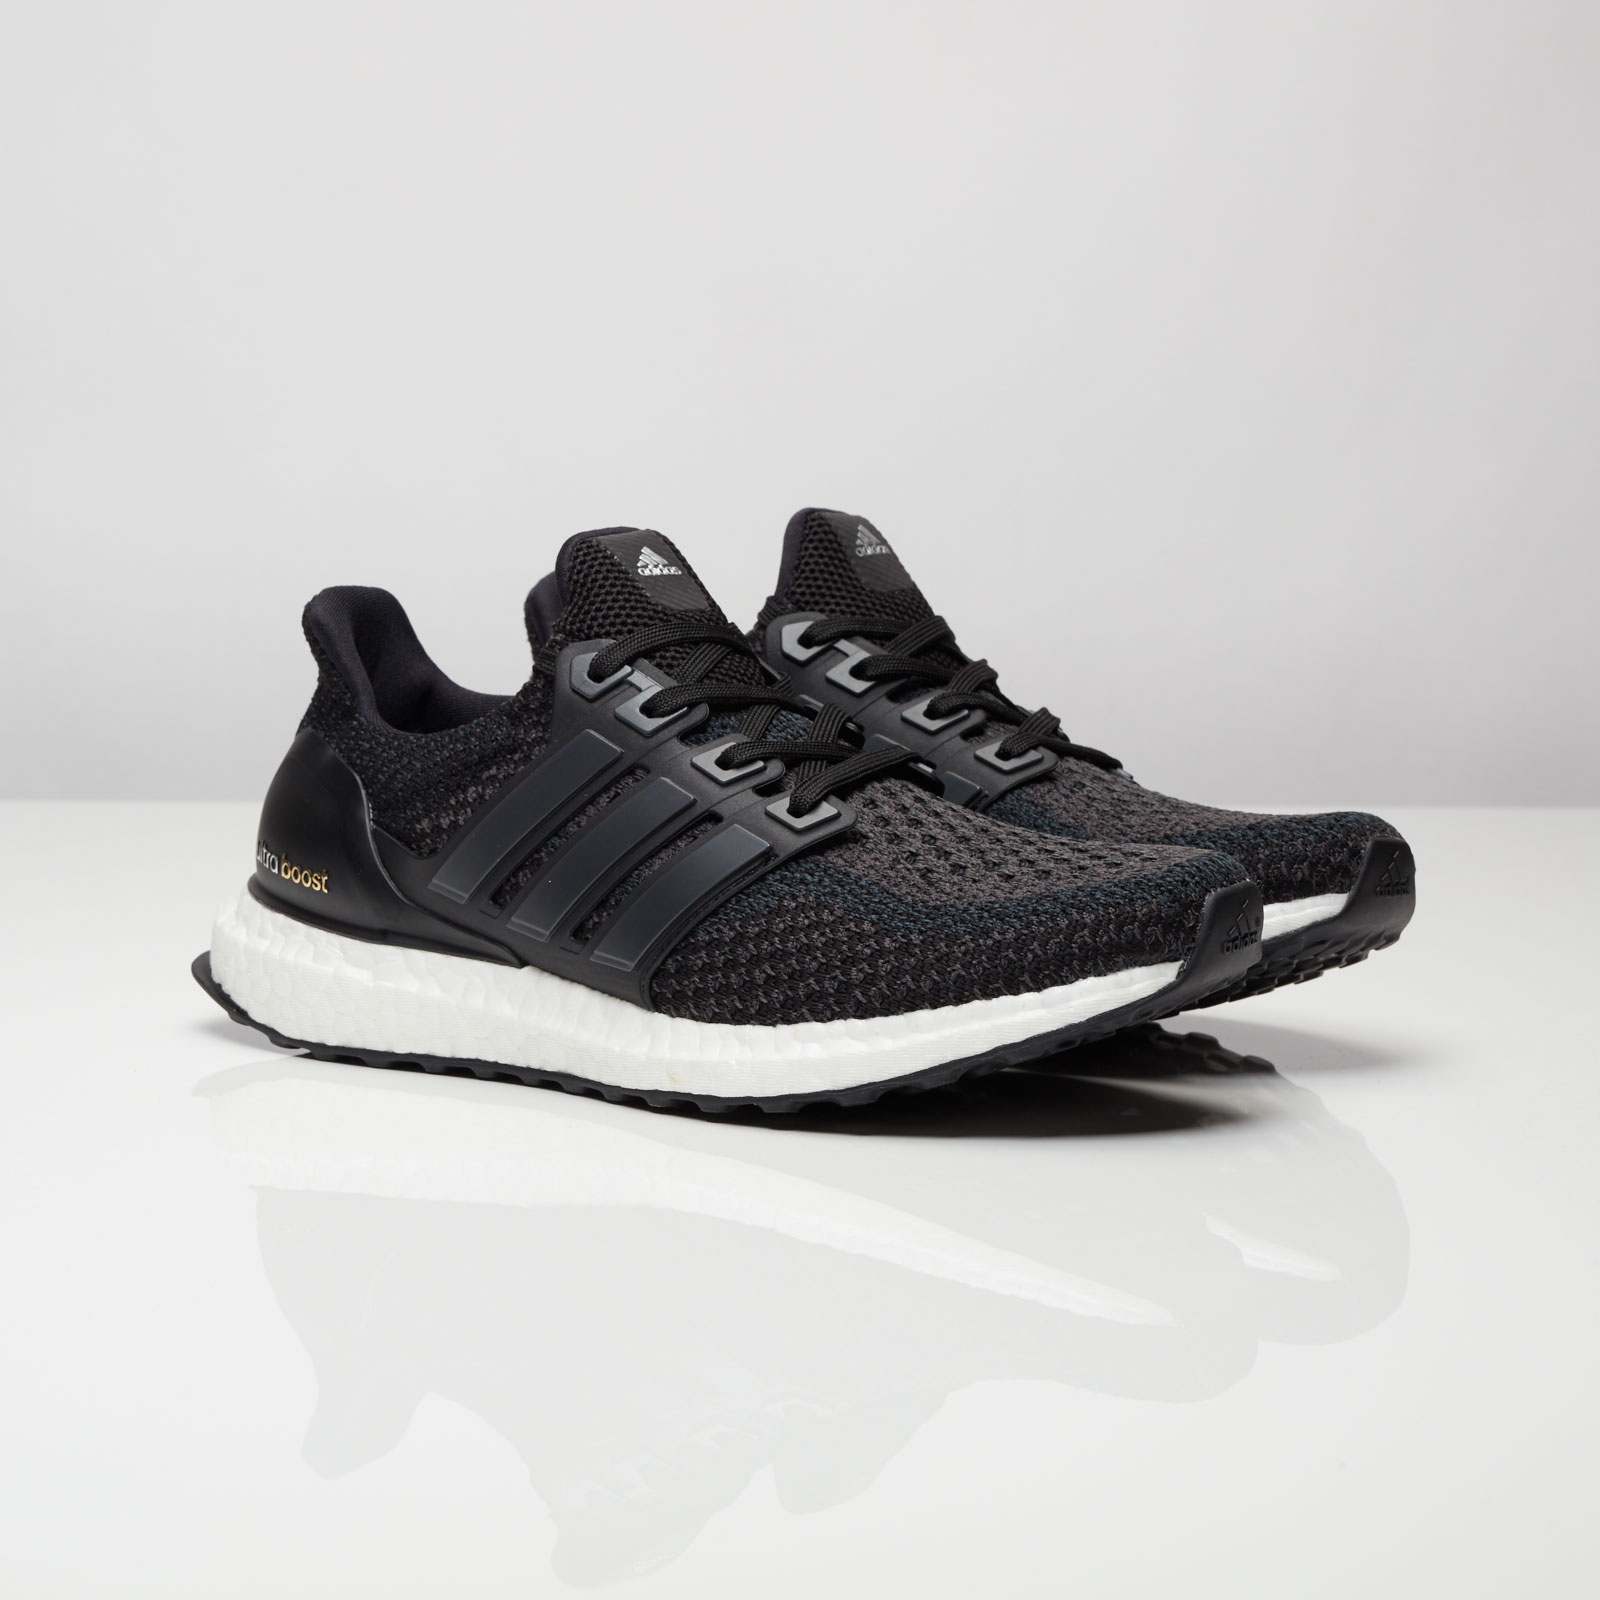 3fa4181a4 adidas Ultra Boost W - Bb3910 - Sneakersnstuff